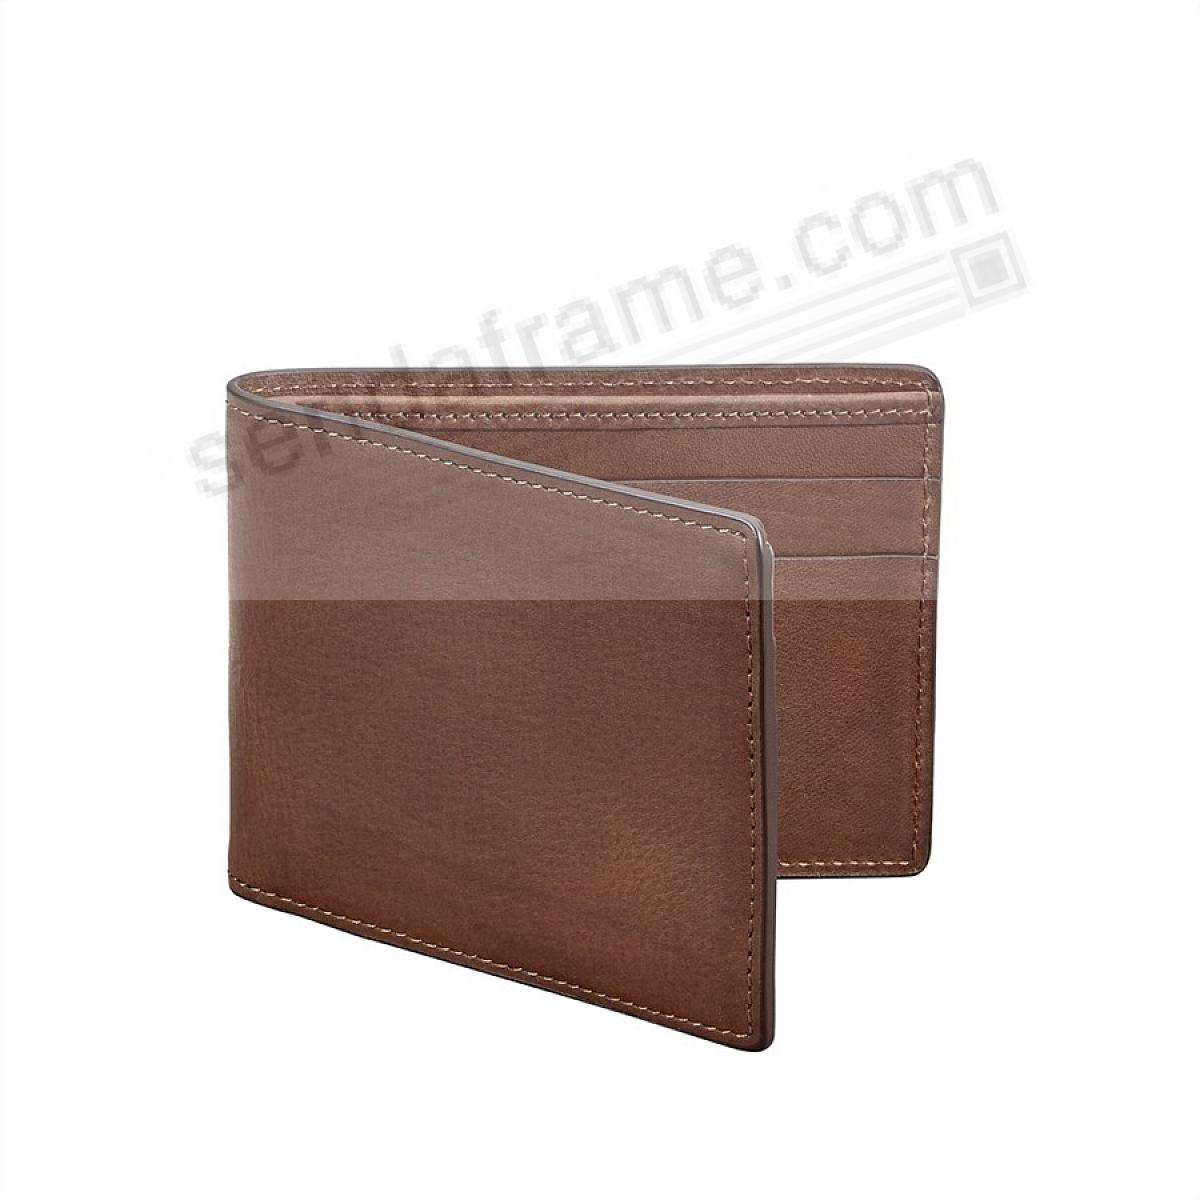 Brown Slim Bi-Fold Wallet in Vachetta Leather by Graphic Image®